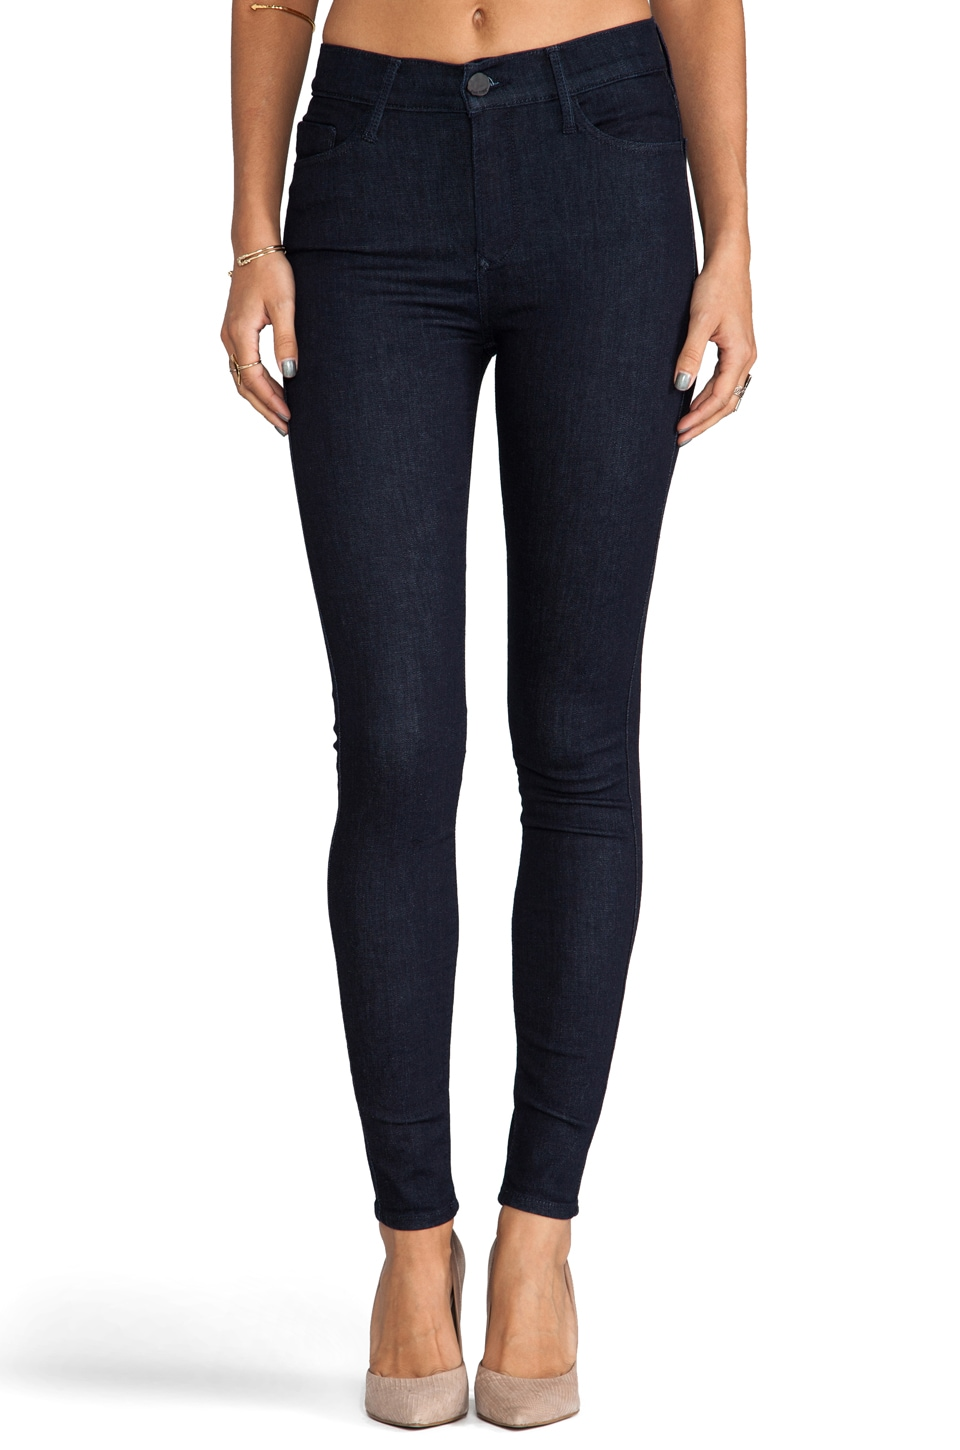 Black Orchid High Rise Skinny in Queen of Holland